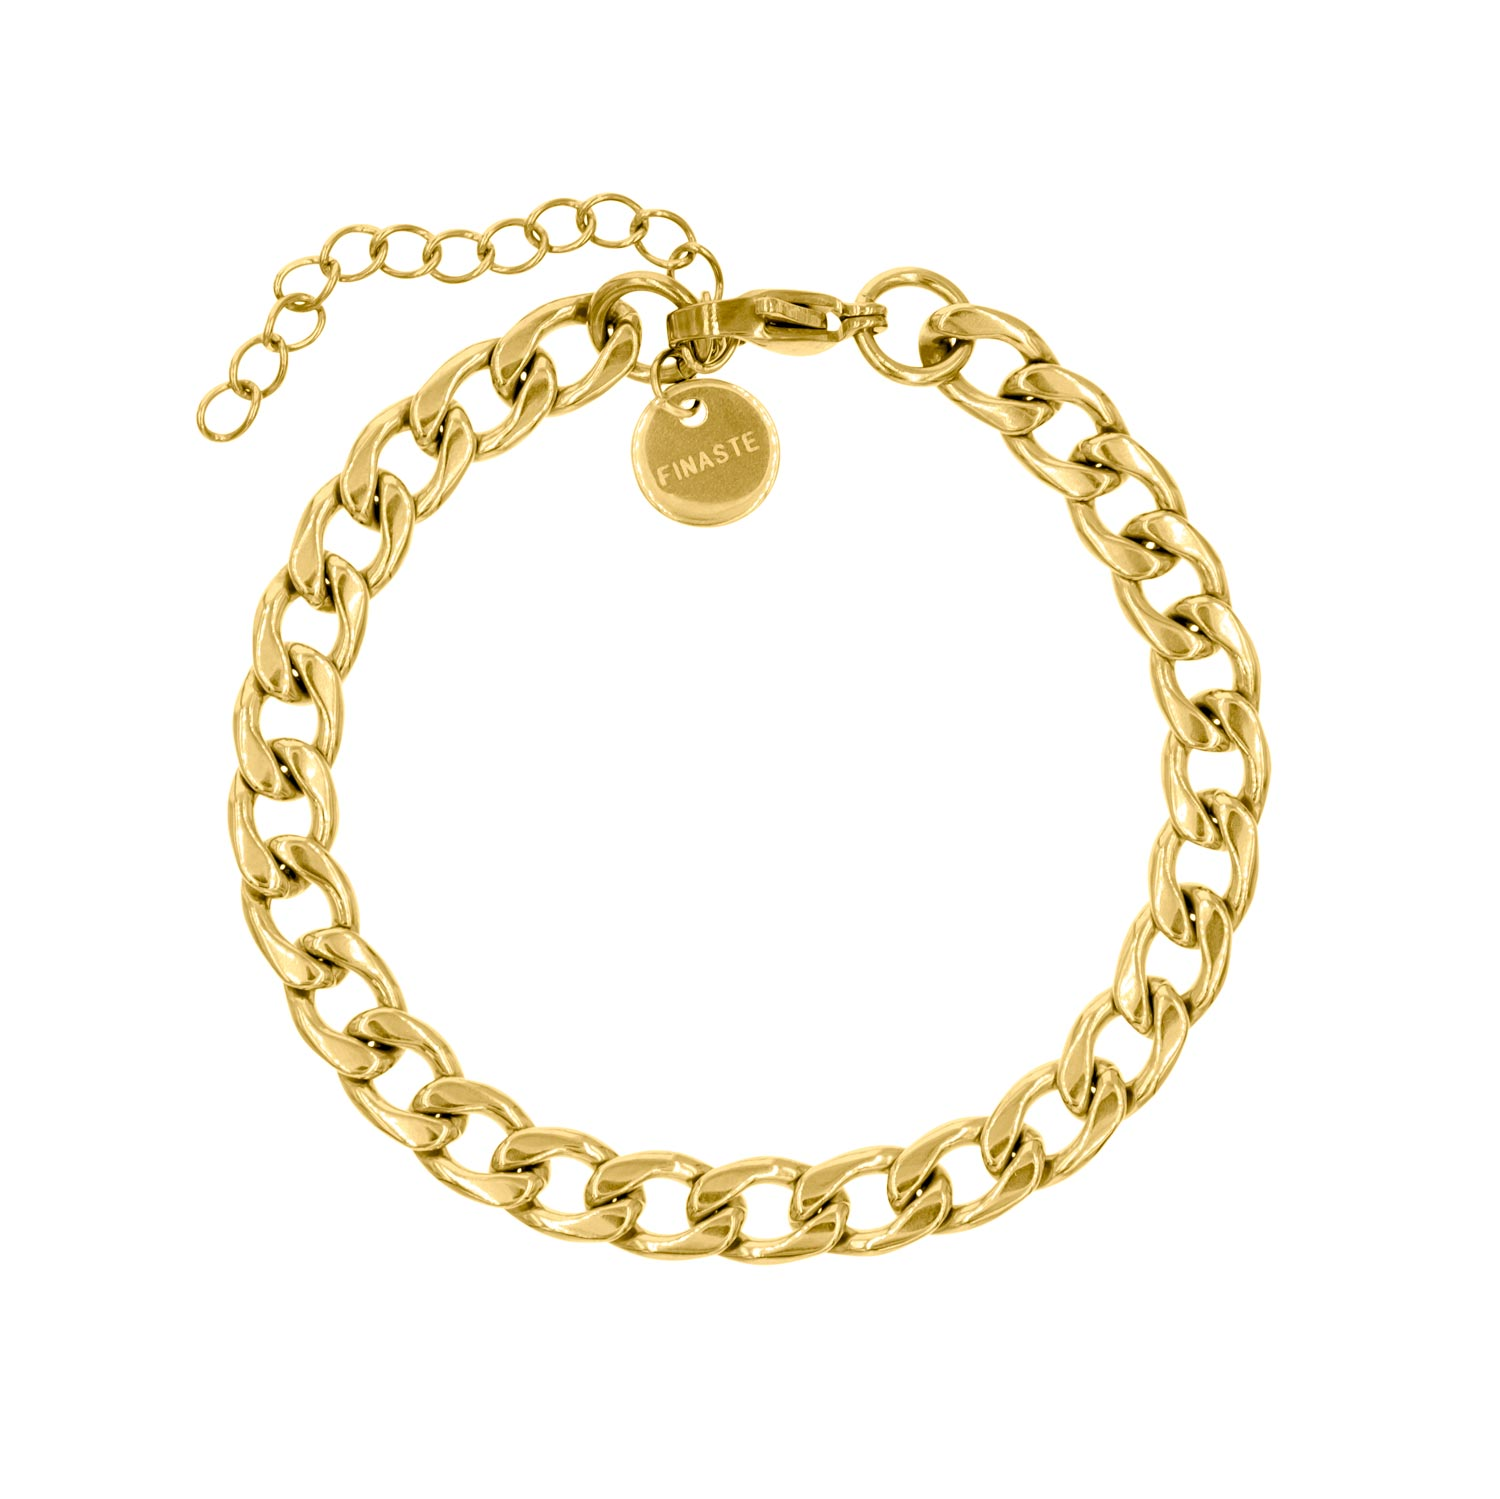 Gouden grove armband met chains